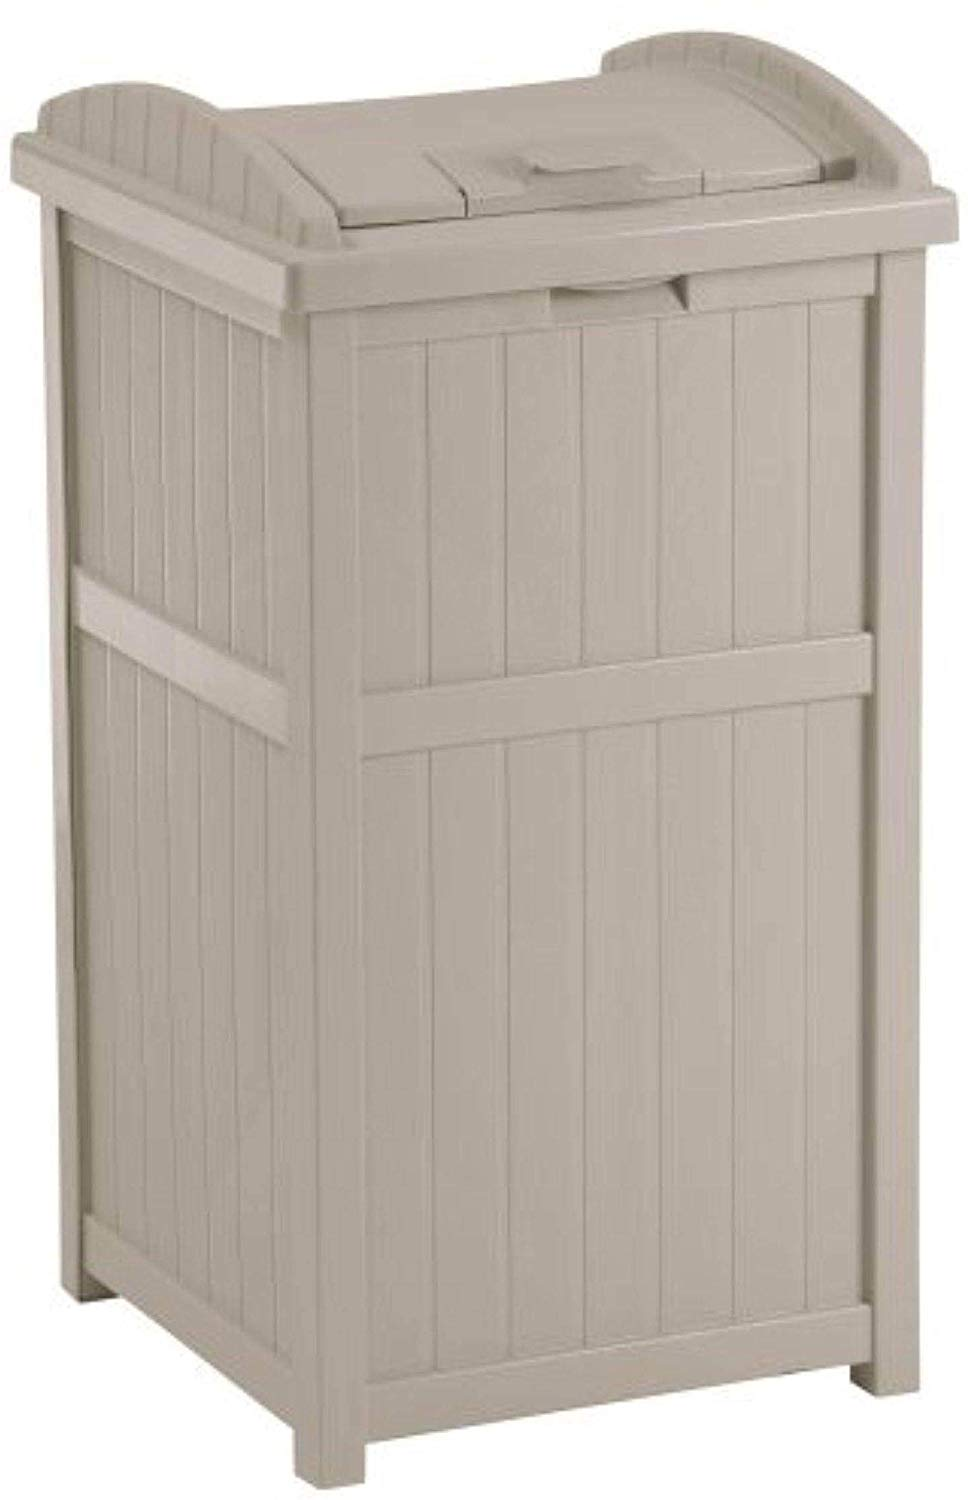 Suncast Outdoor Trash Can, 33 Gallon